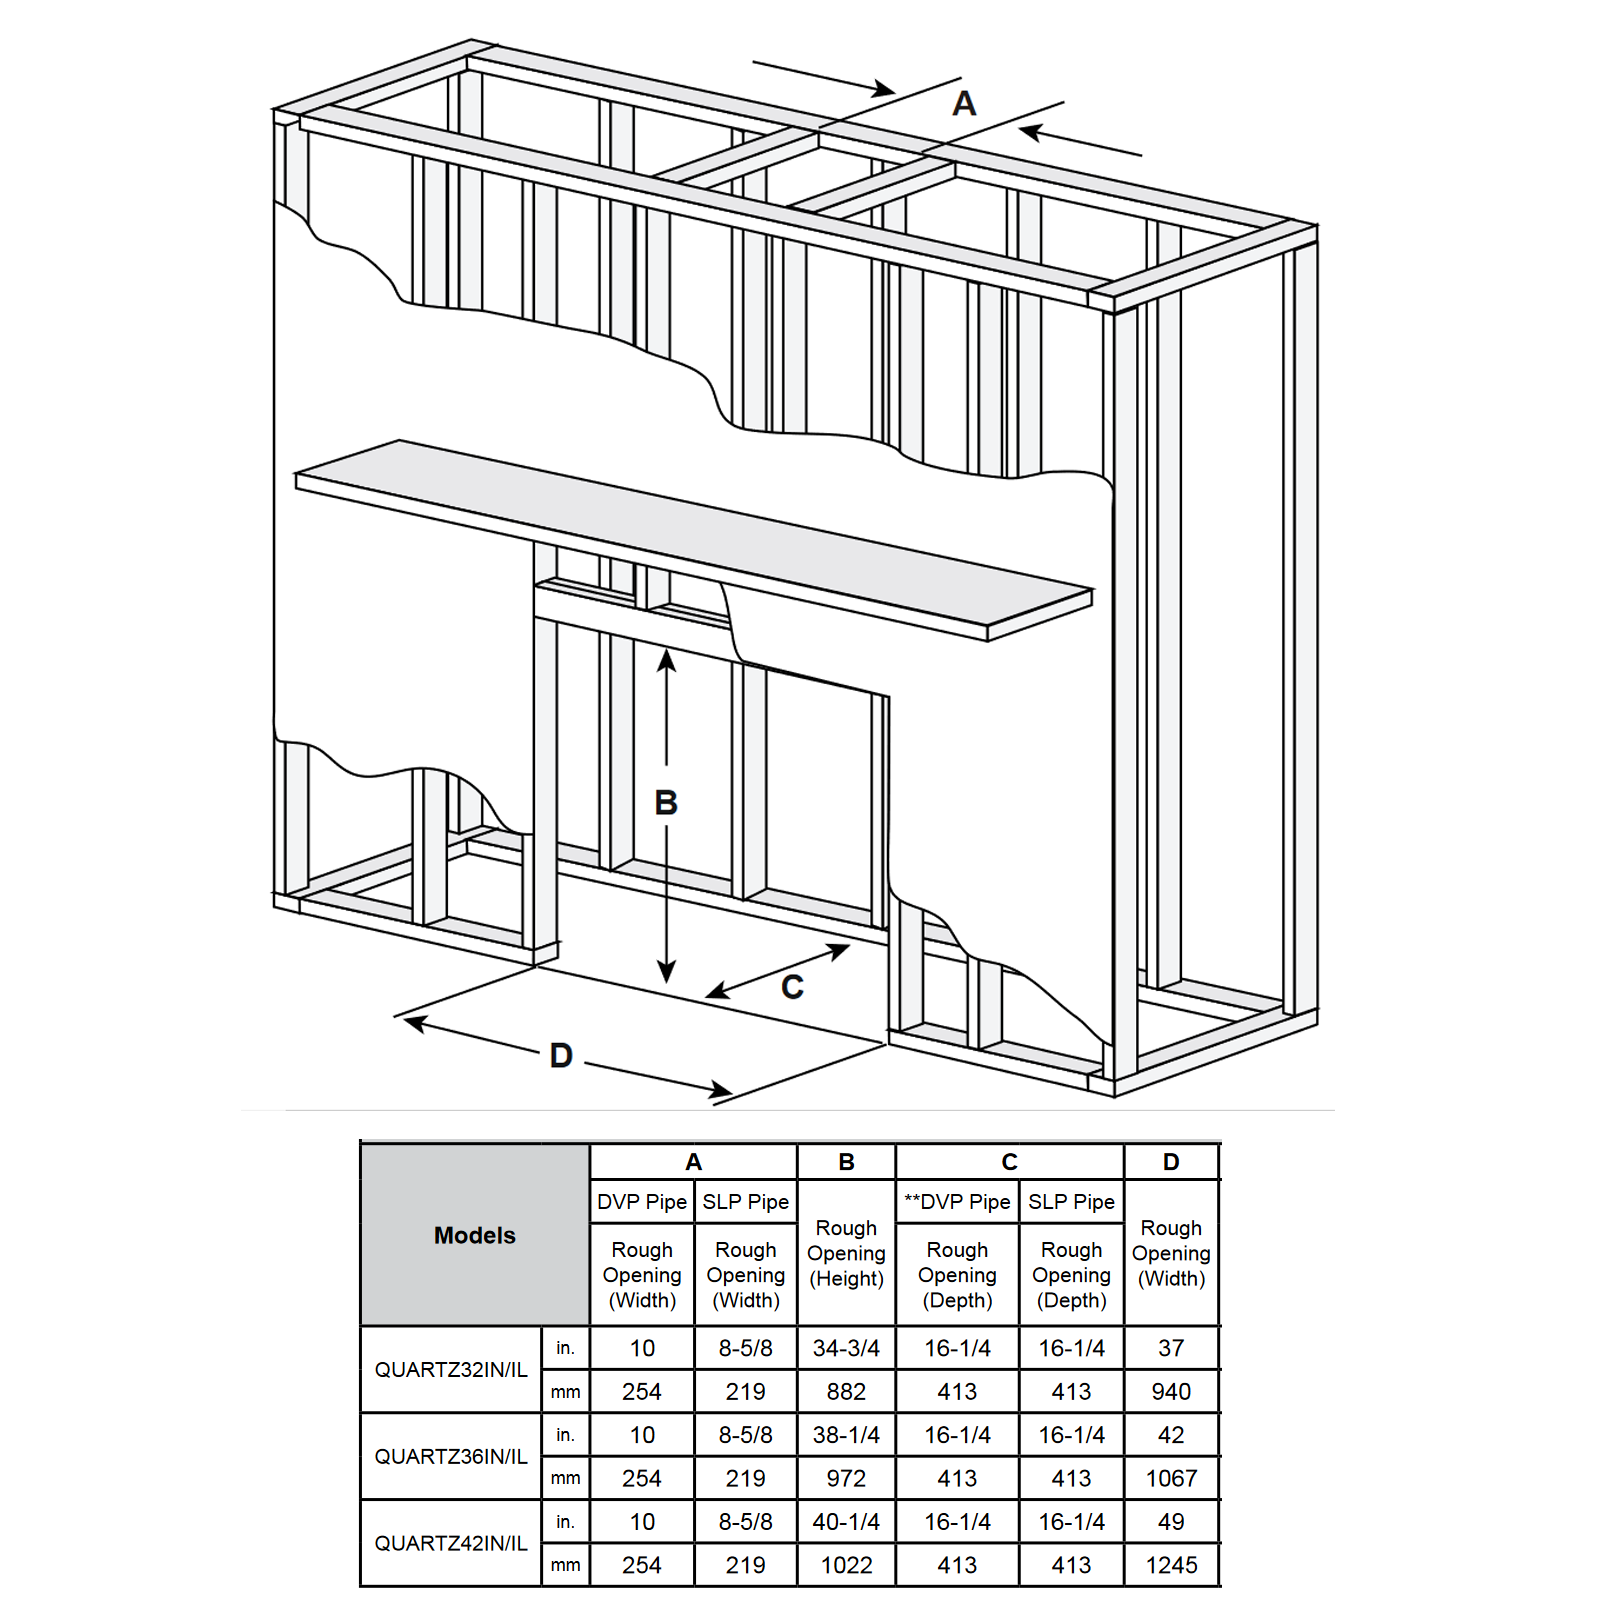 QUARTZ32 Technical Drawing 2